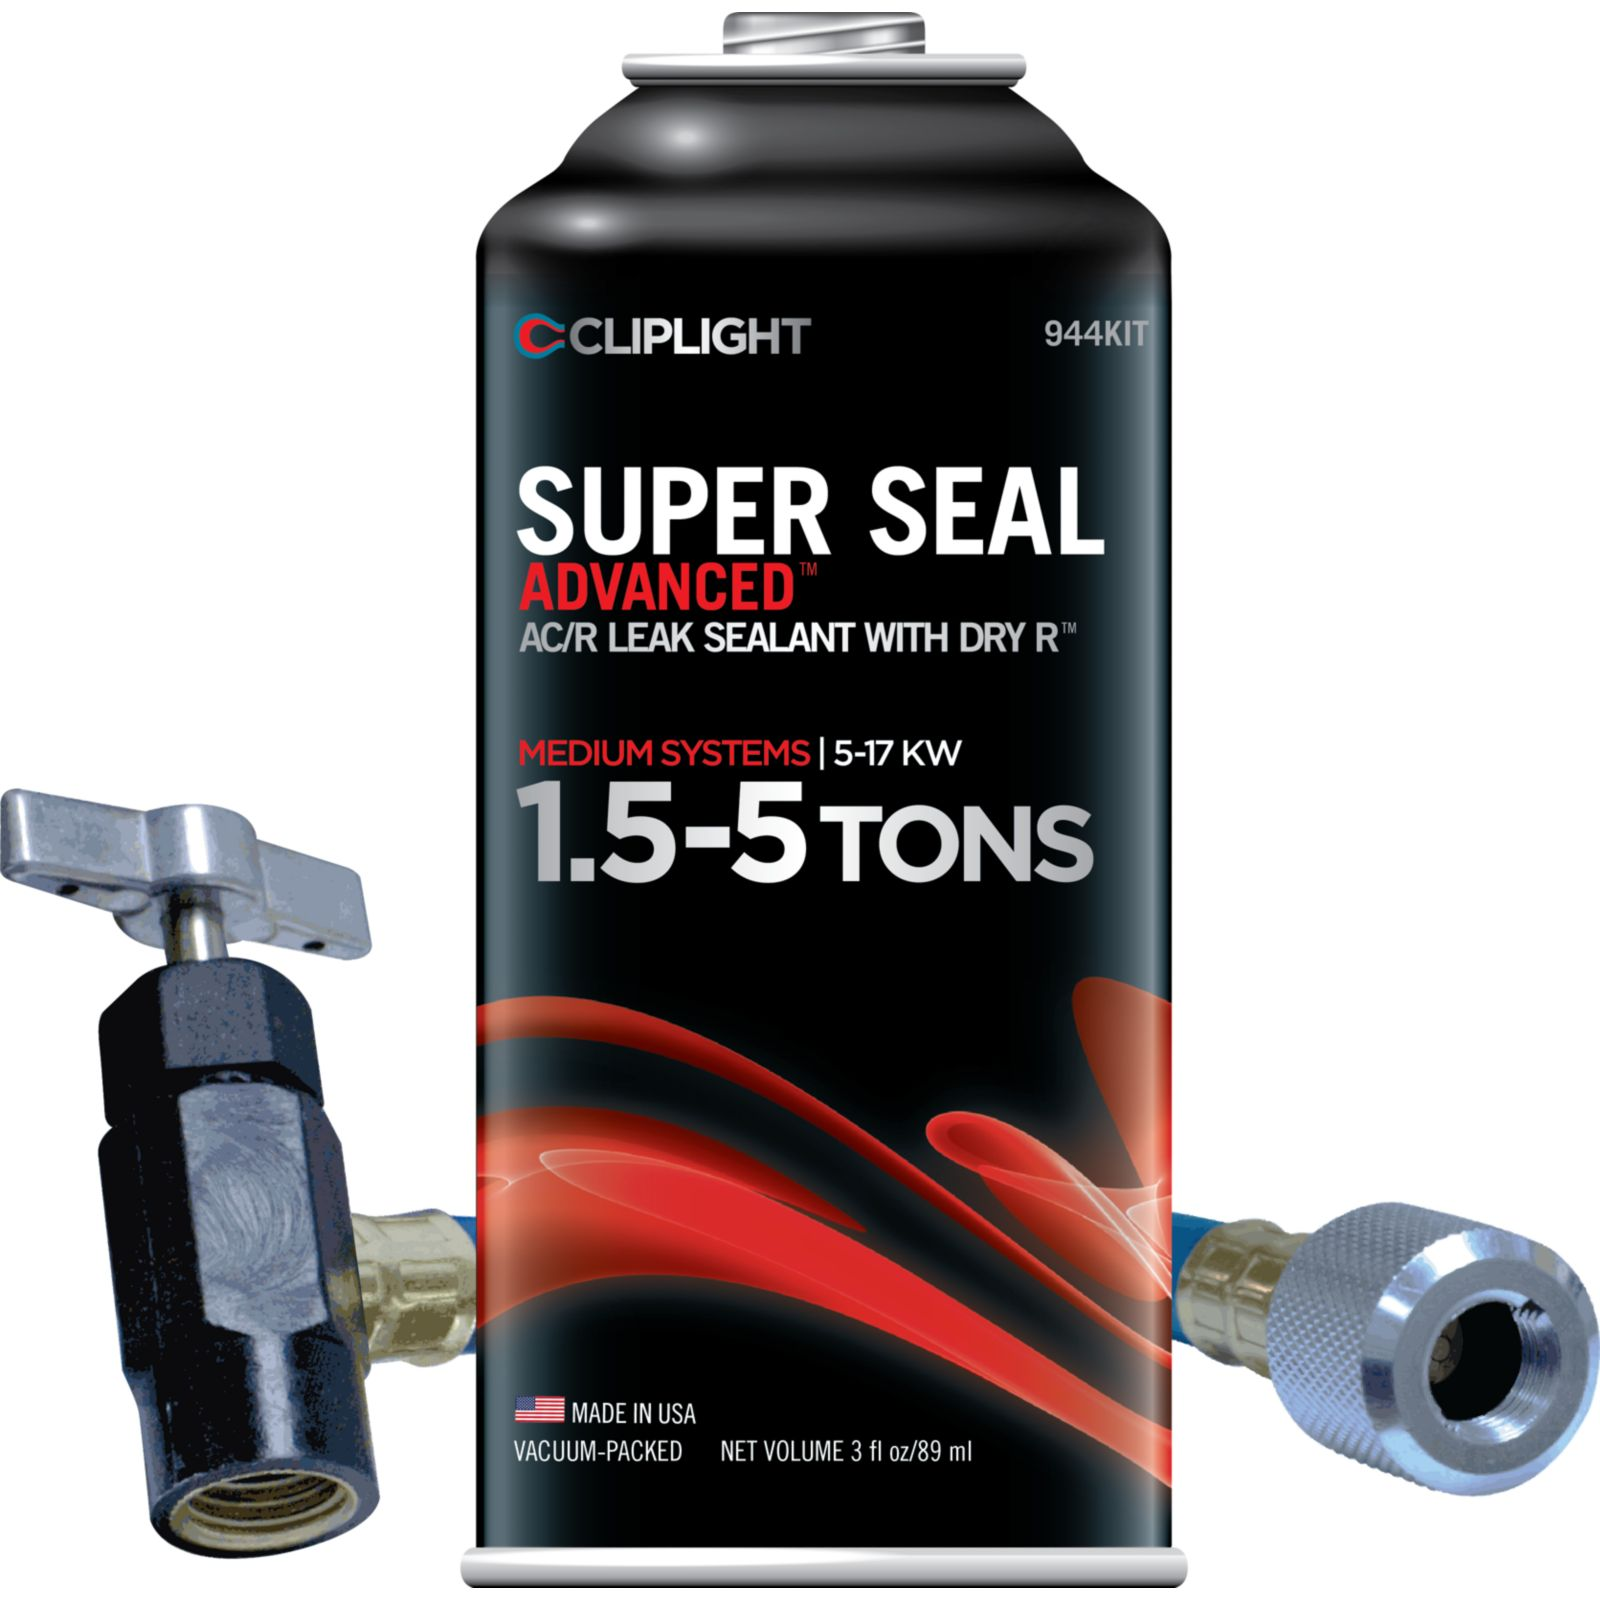 SUPER SEAL ADVANCED A/C